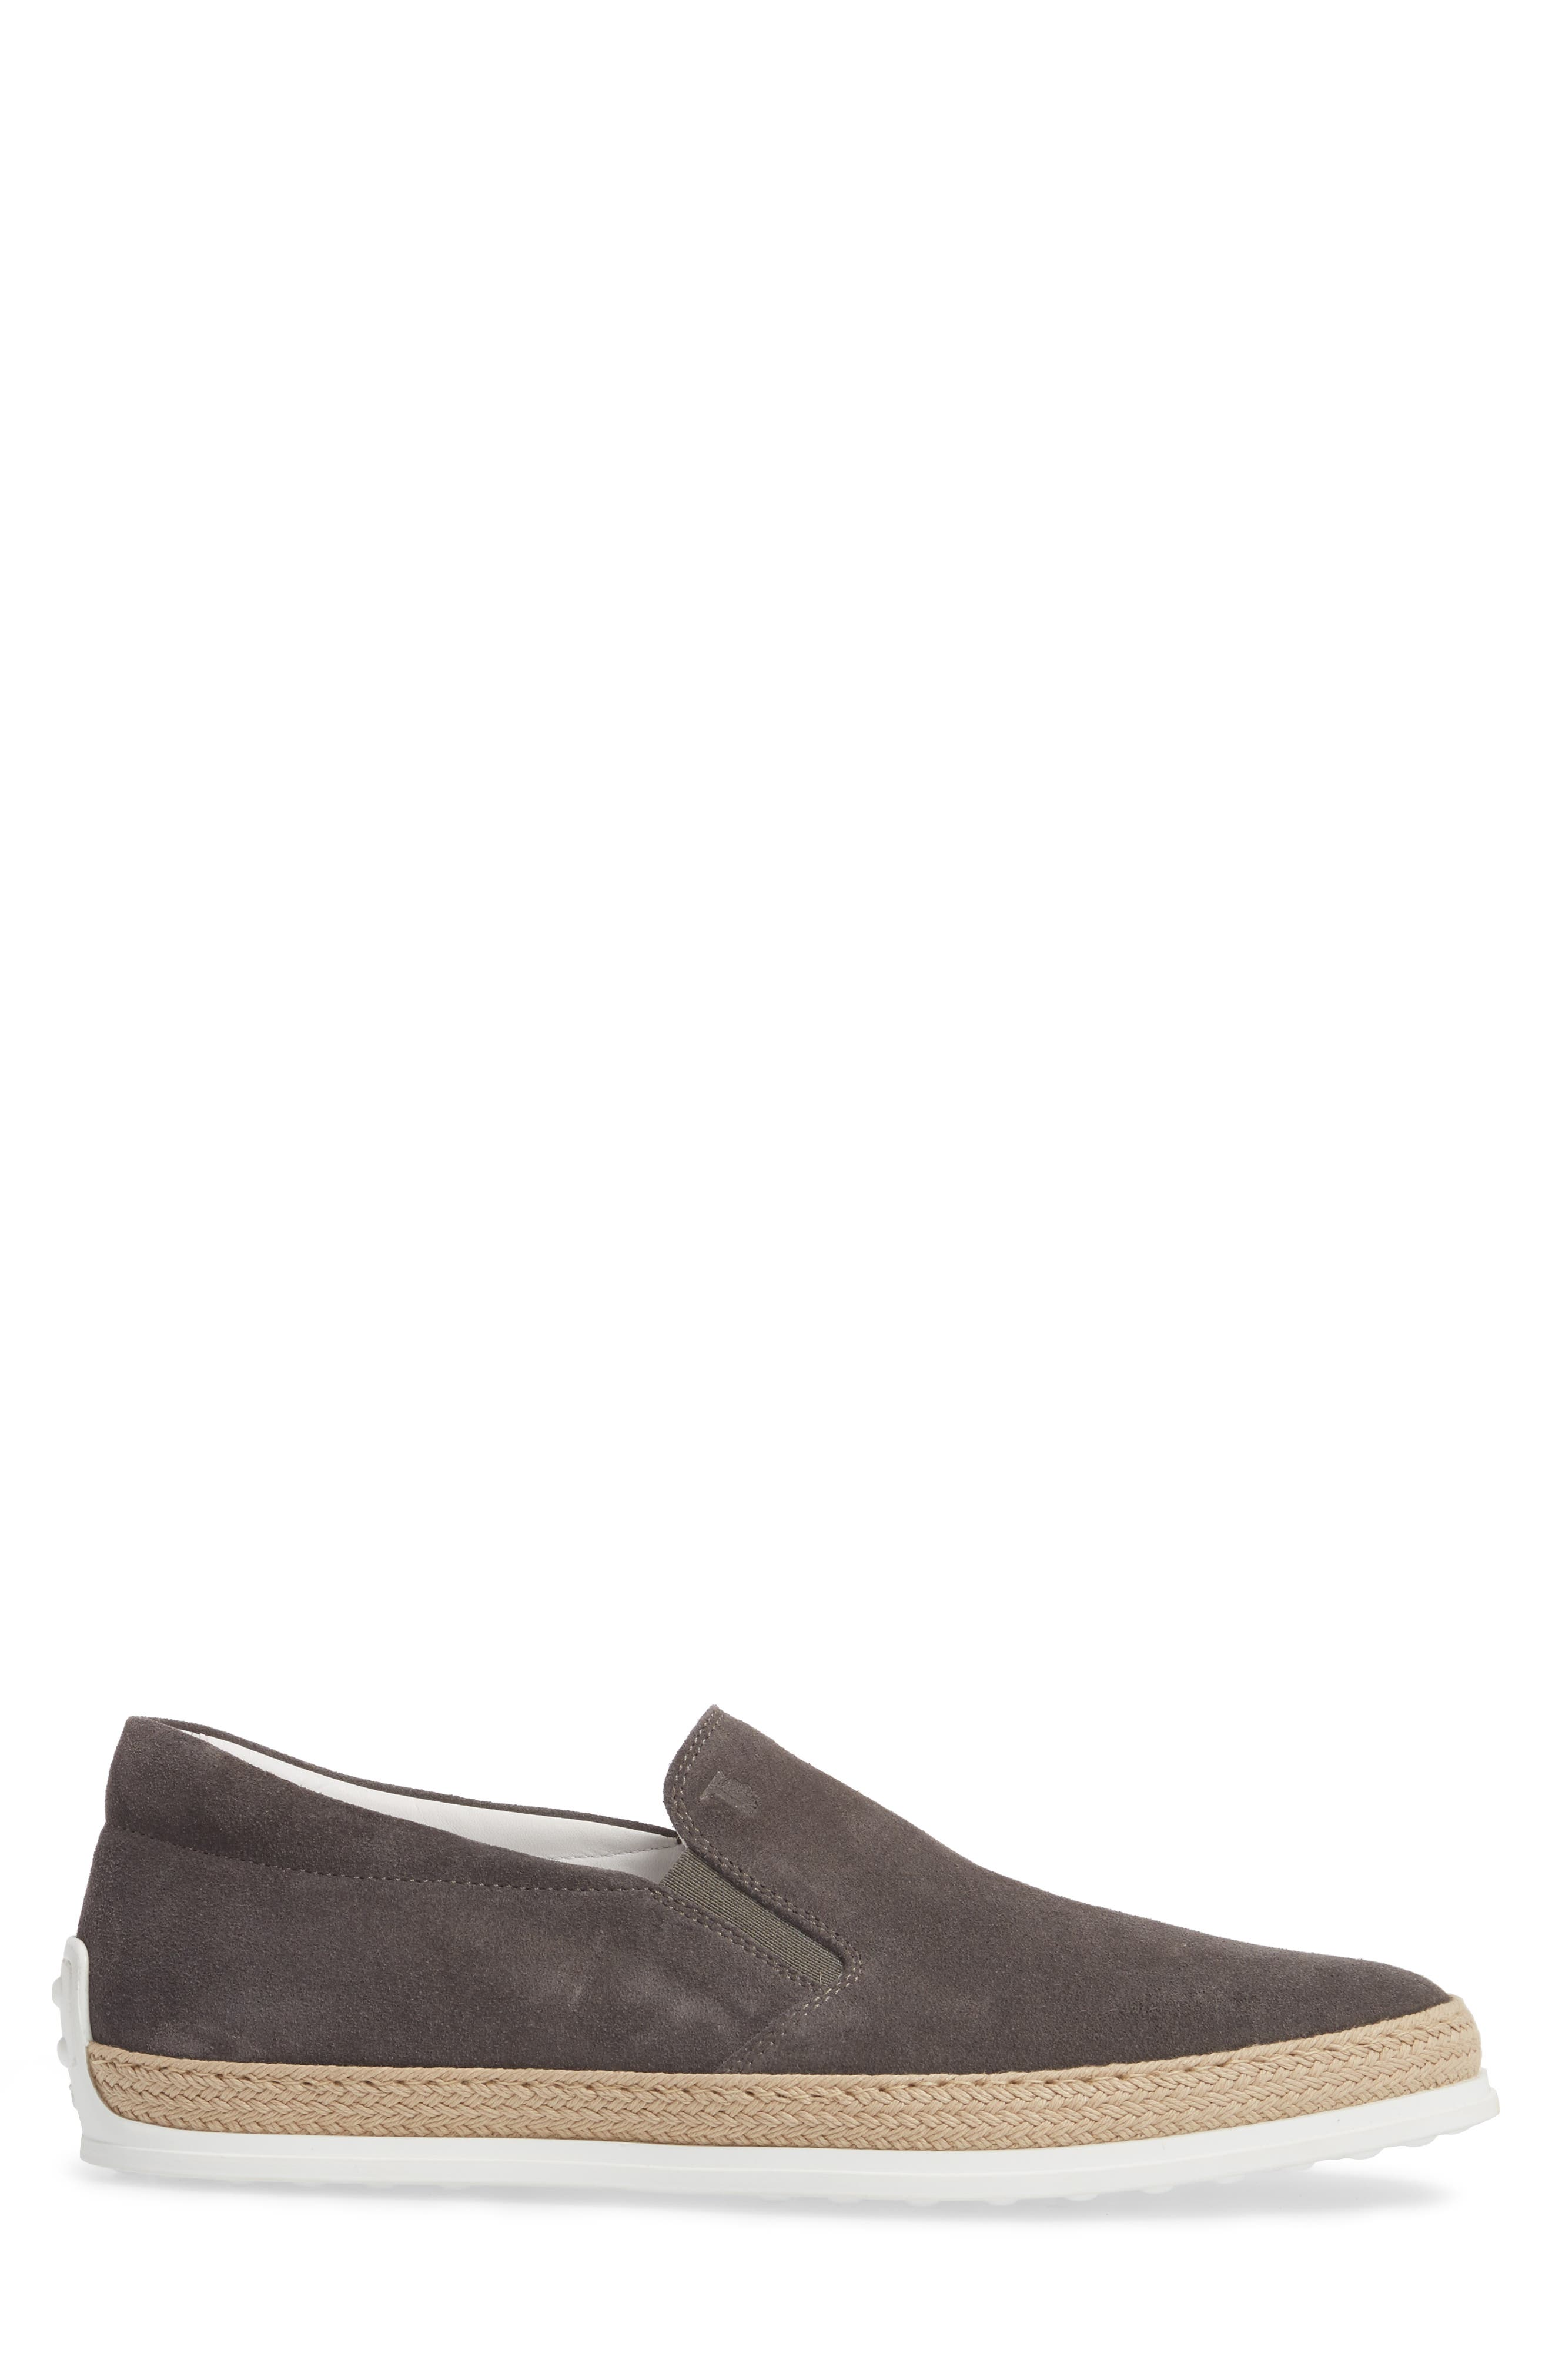 Espadrille Slip-On,                             Alternate thumbnail 3, color,                             030